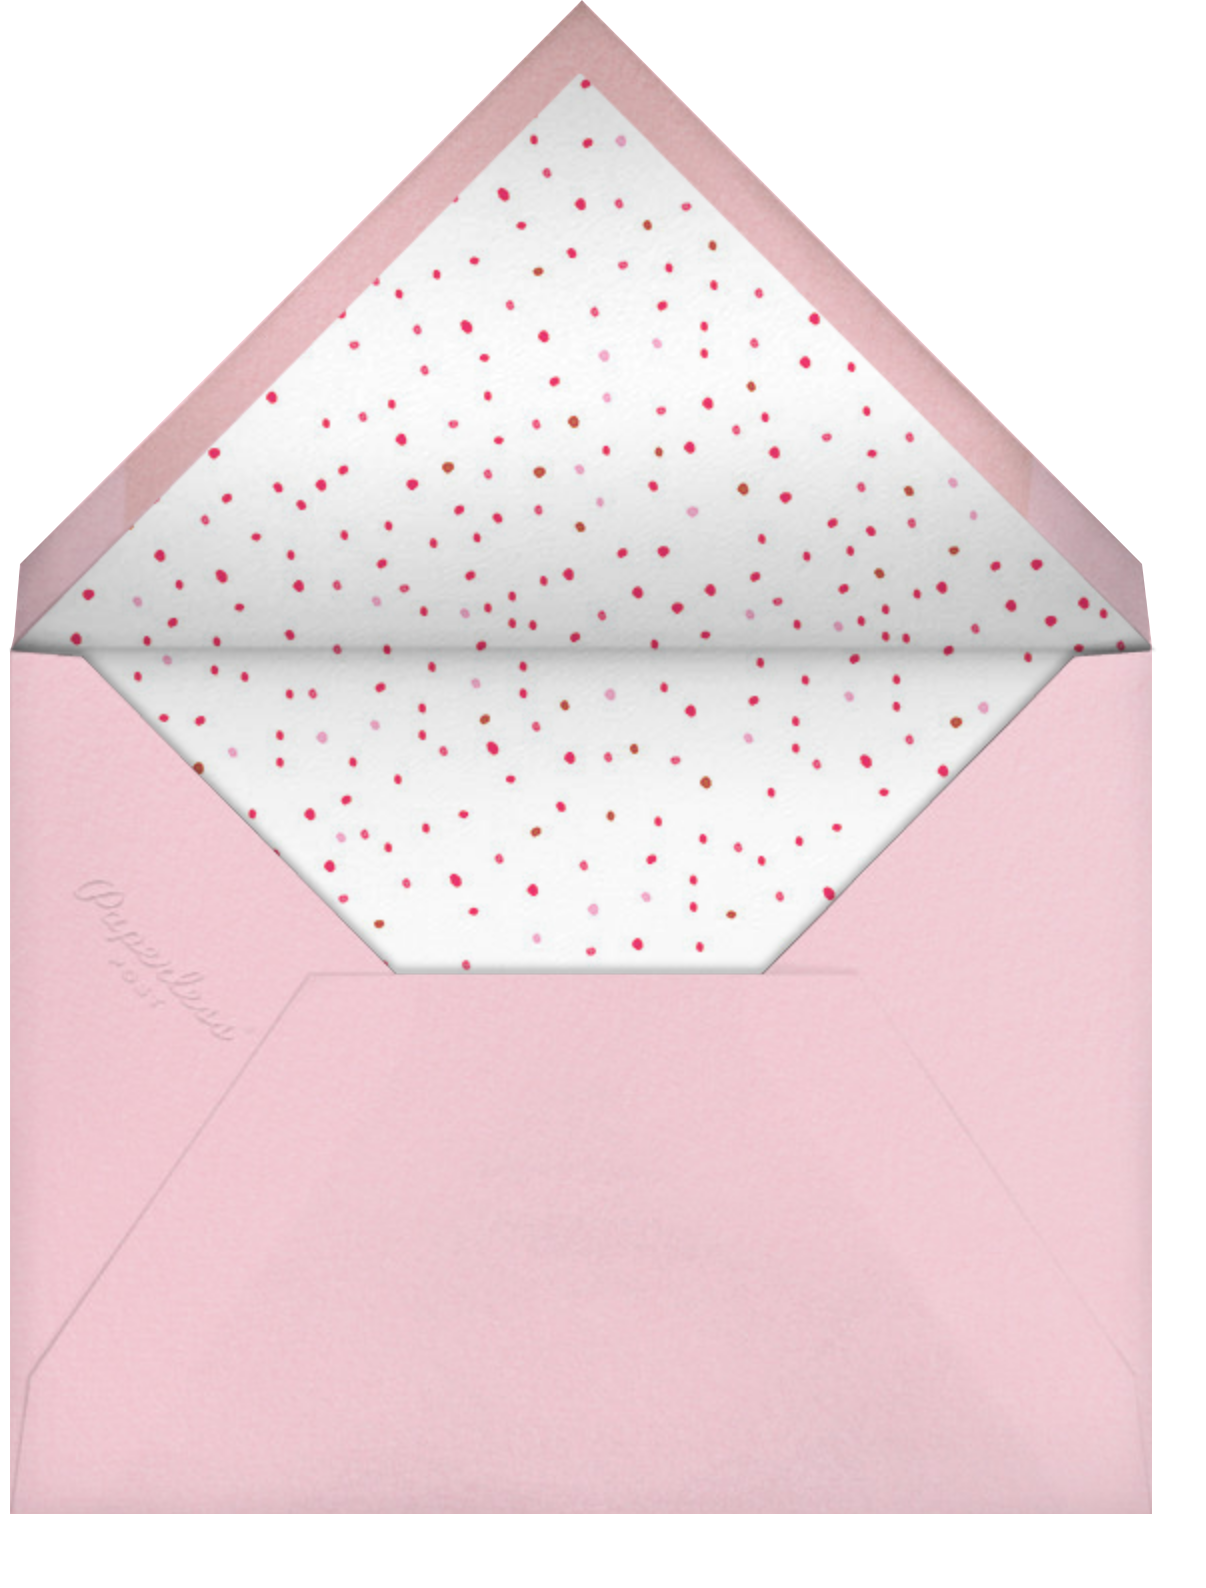 Blow Up the Balloons (Photo) - Pink - Mr. Boddington's Studio - Kids' birthday - envelope back